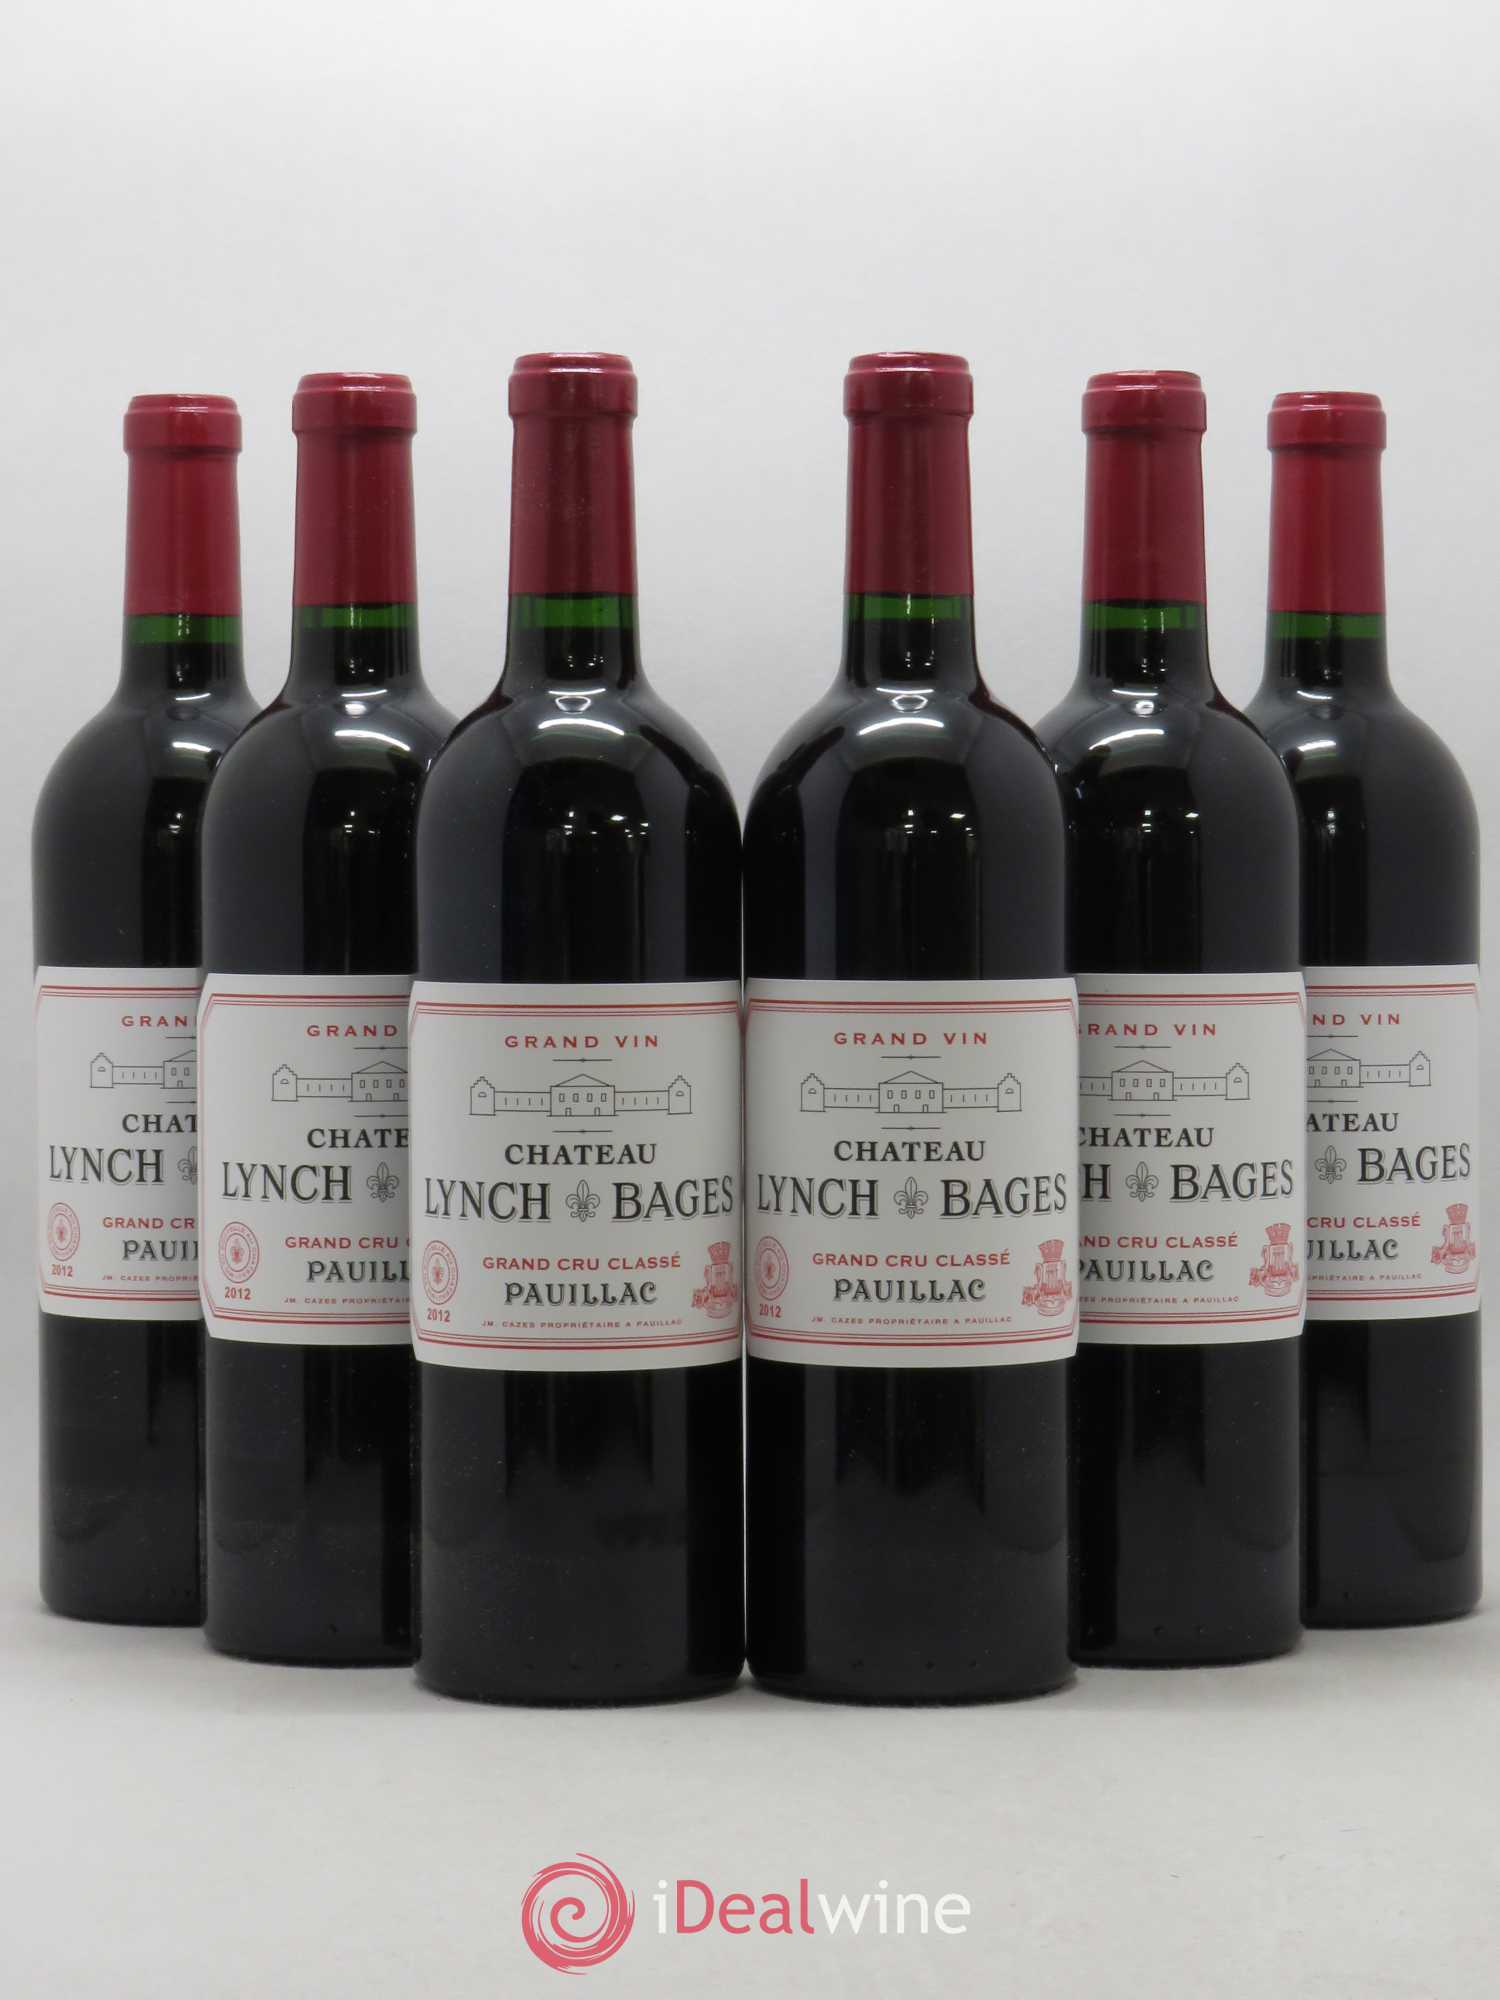 Château Lynch Bages 5ème Grand Cru Classé  2012 - Lot of 6 Bottles